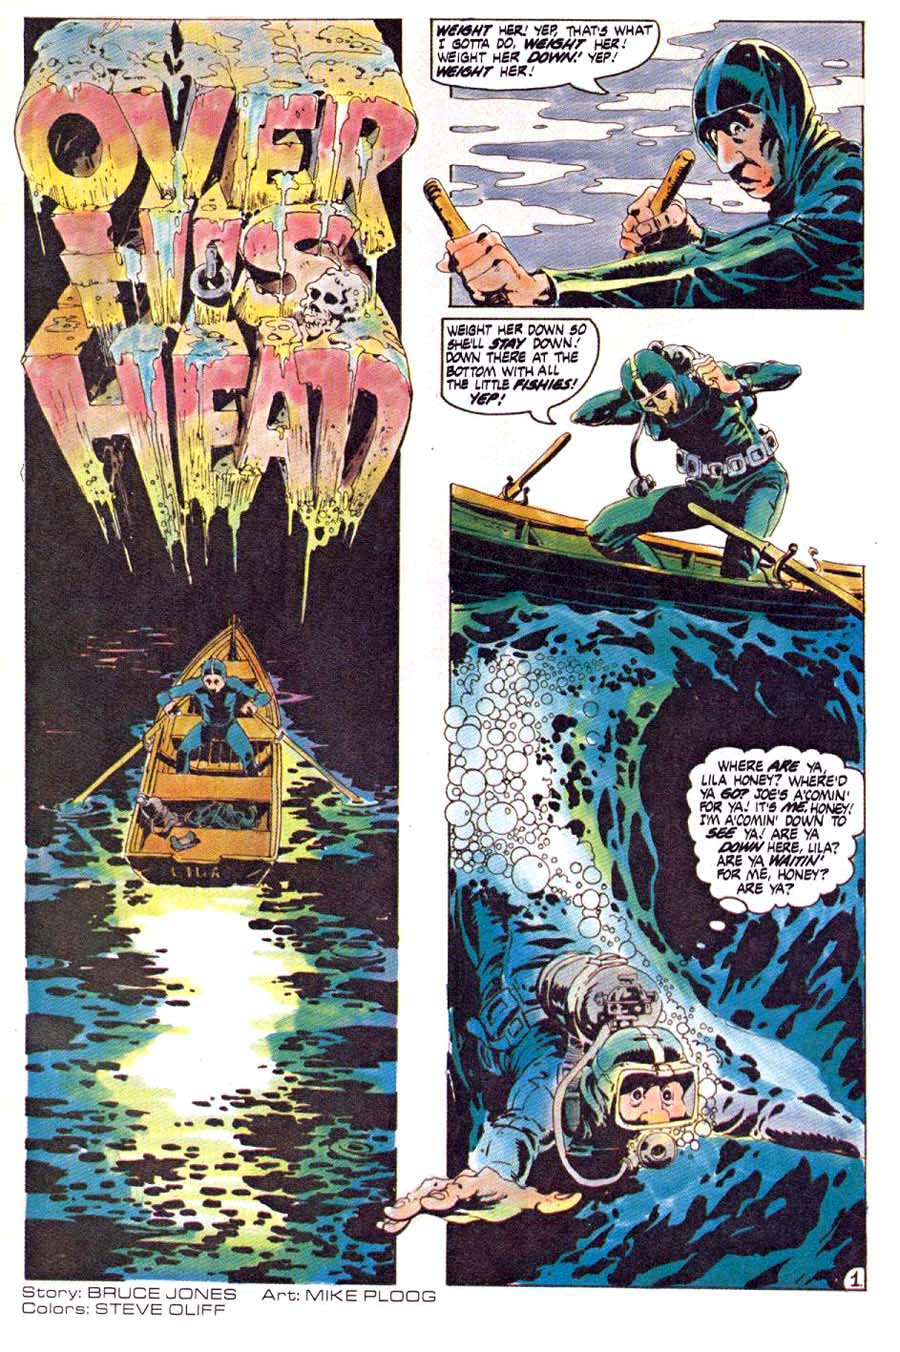 Twisted Tales v1 #2 - Mike Ploog 1980s horror comic book page art